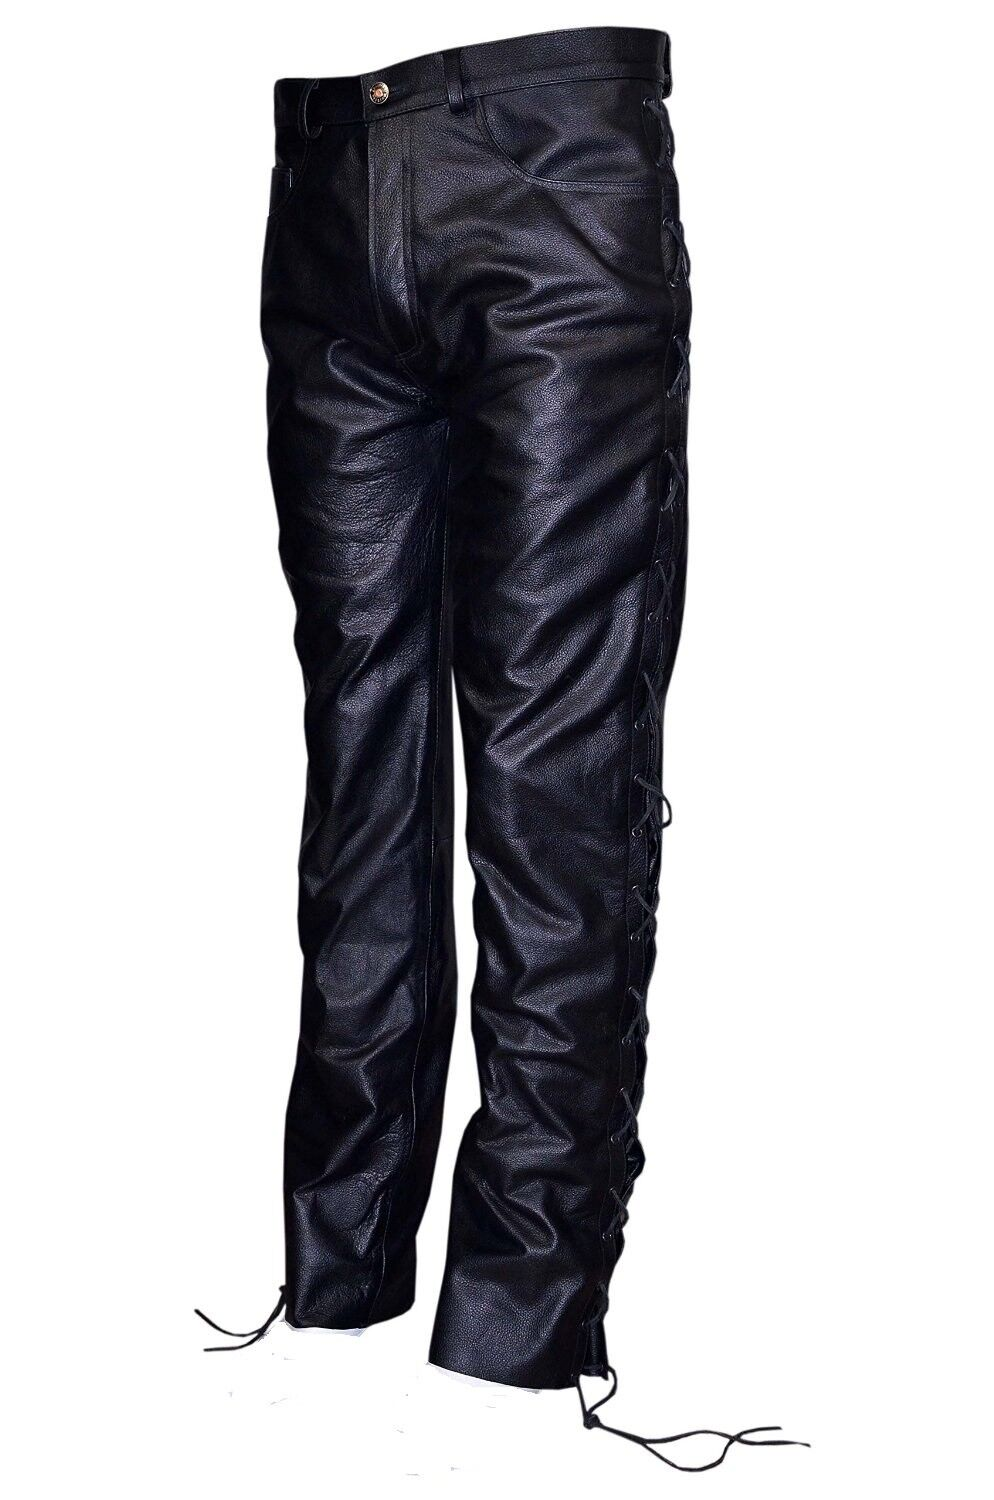 MENS schwarz LACED PANTS GENUINE HIDE LEATHER BIKER STYLE MOTORBIKE JEANS TROUSERS